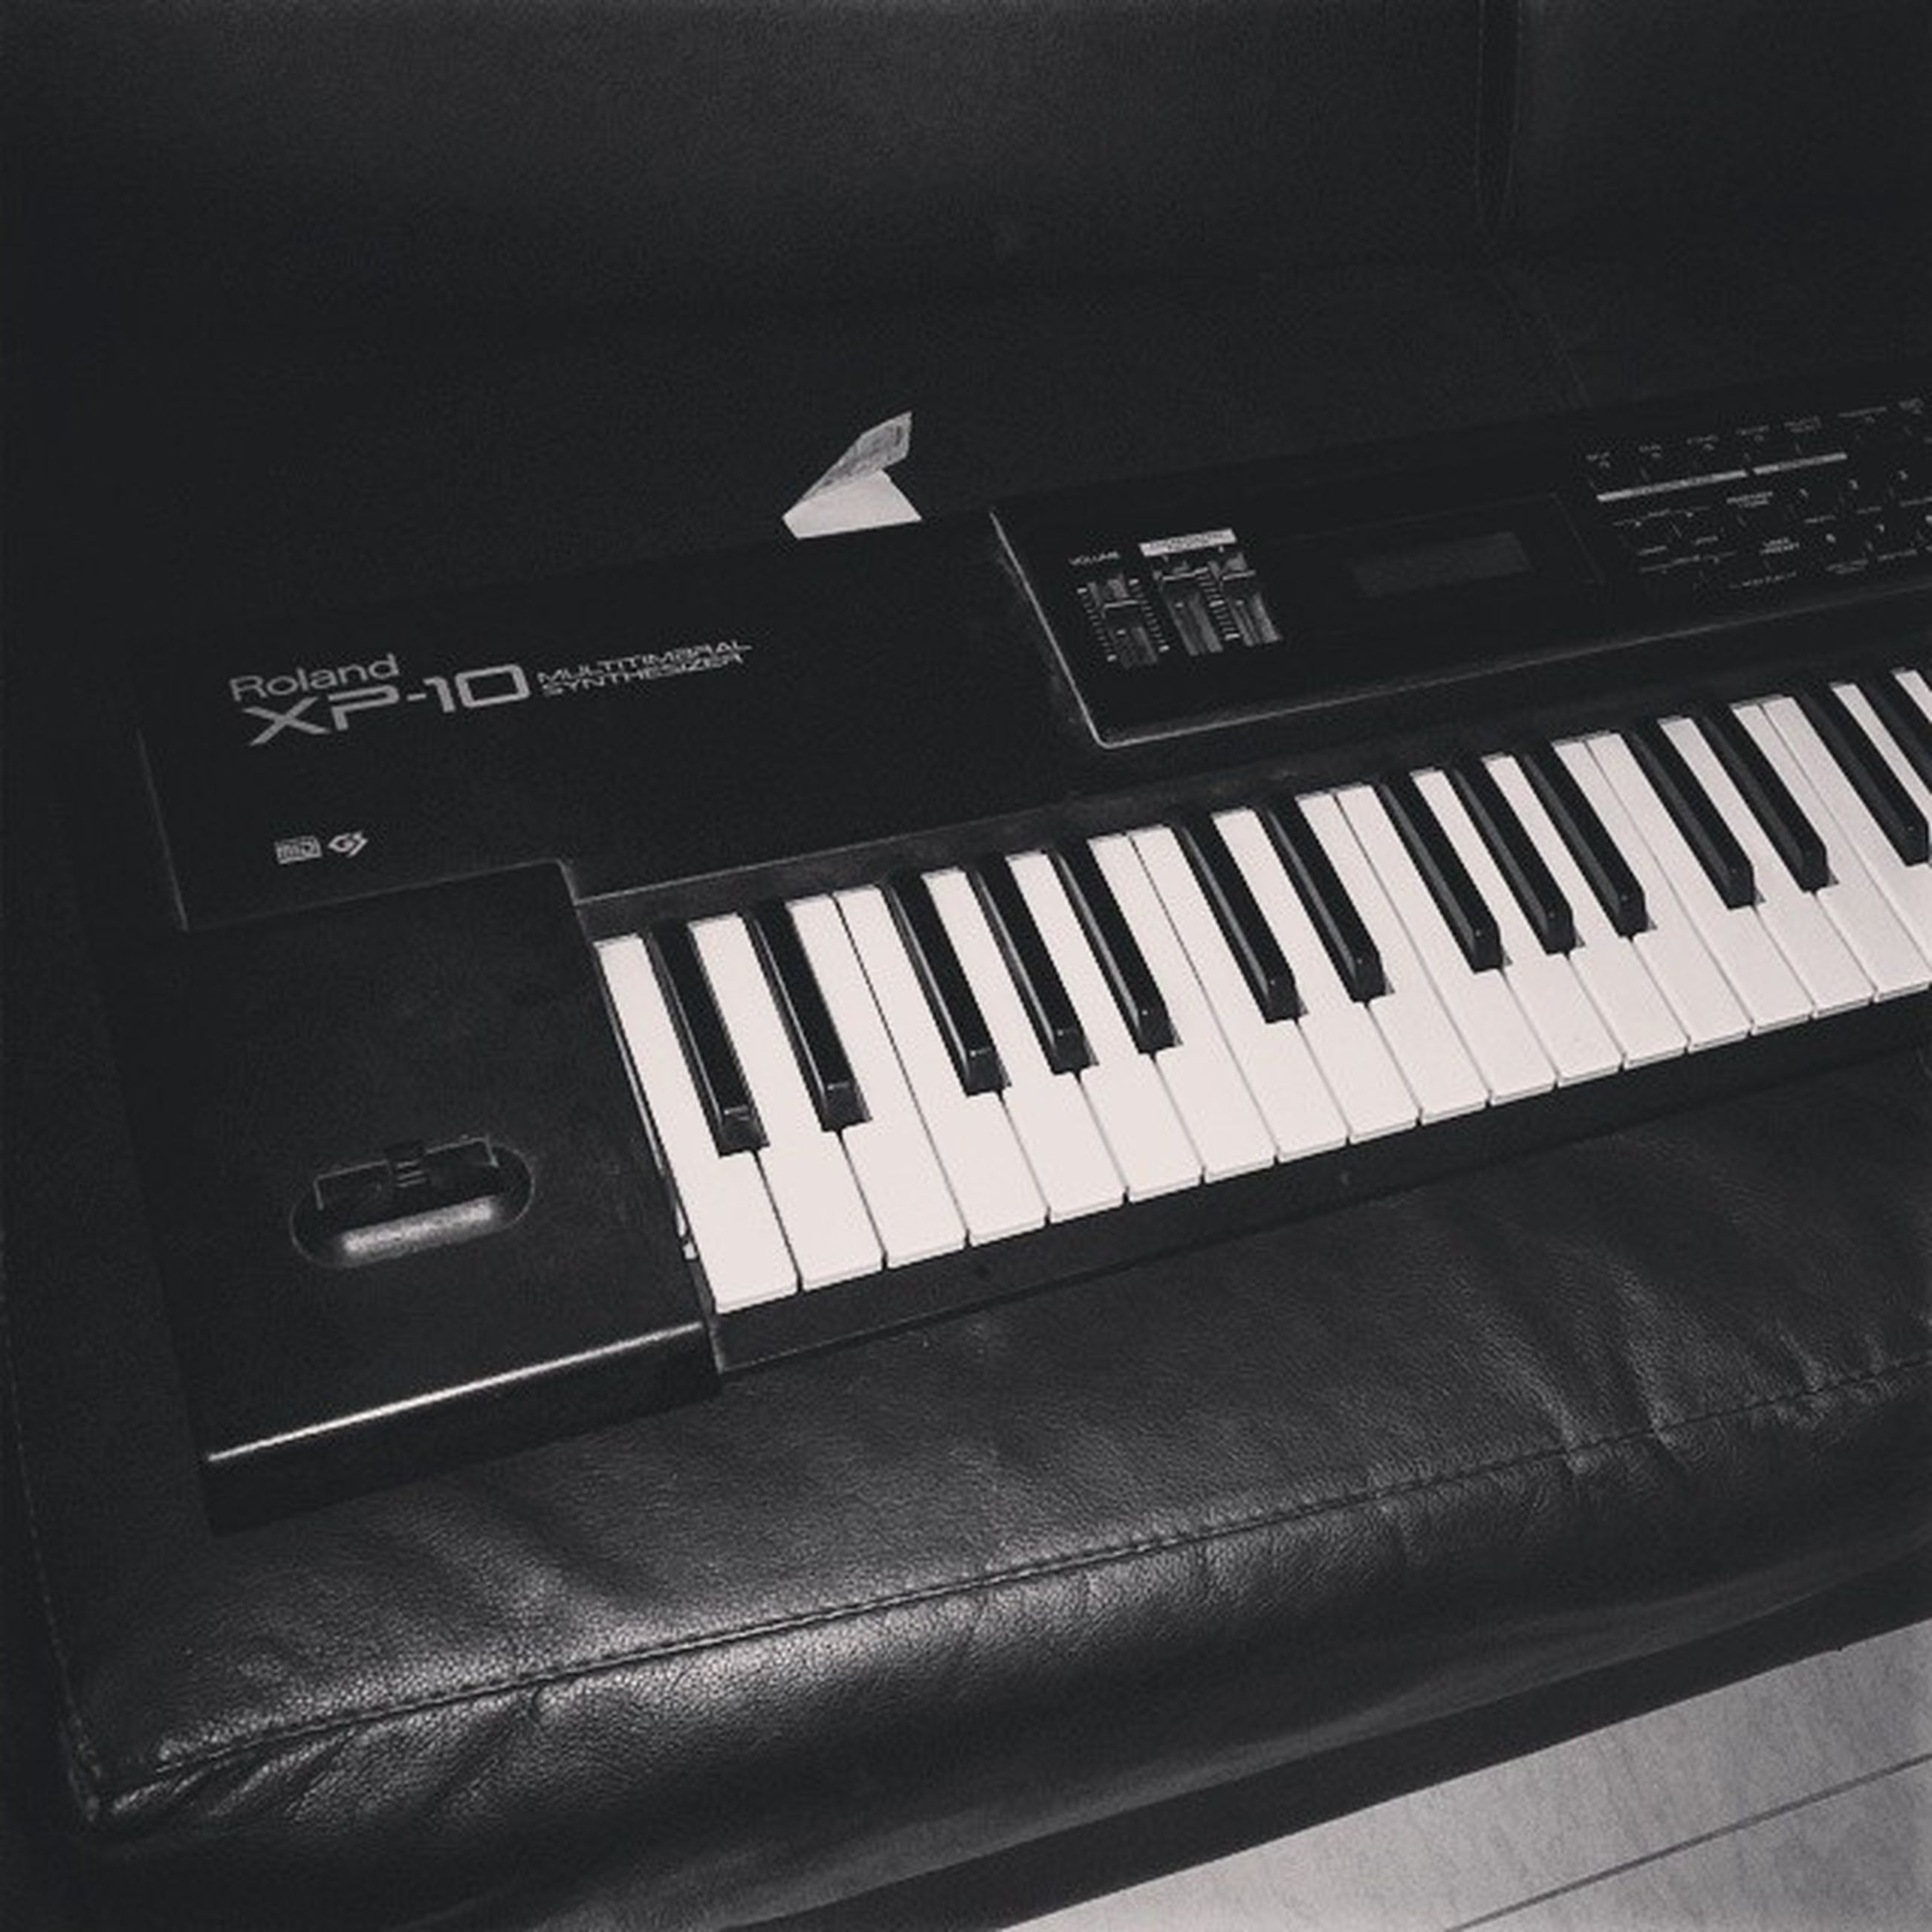 communication, indoors, text, western script, technology, close-up, music, number, arts culture and entertainment, capital letter, wireless technology, high angle view, connection, musical instrument, no people, piano key, computer keyboard, piano, laptop, control